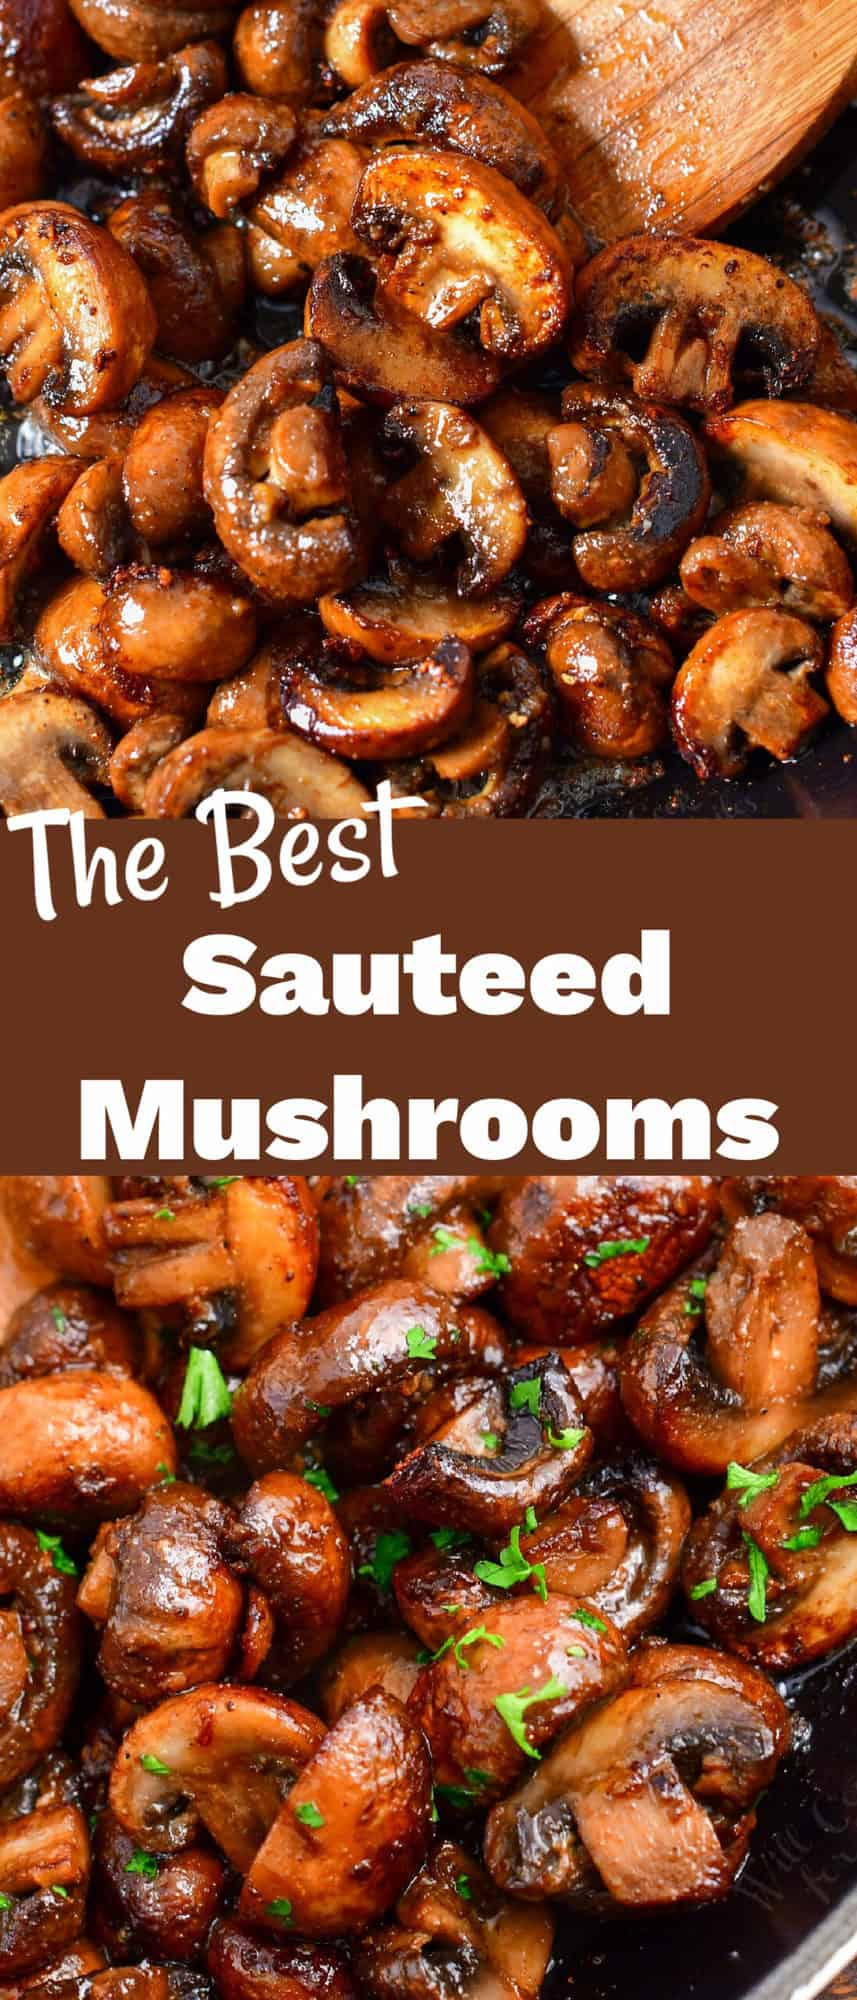 titled photo (and shown): The Best Sauteed Mushrooms